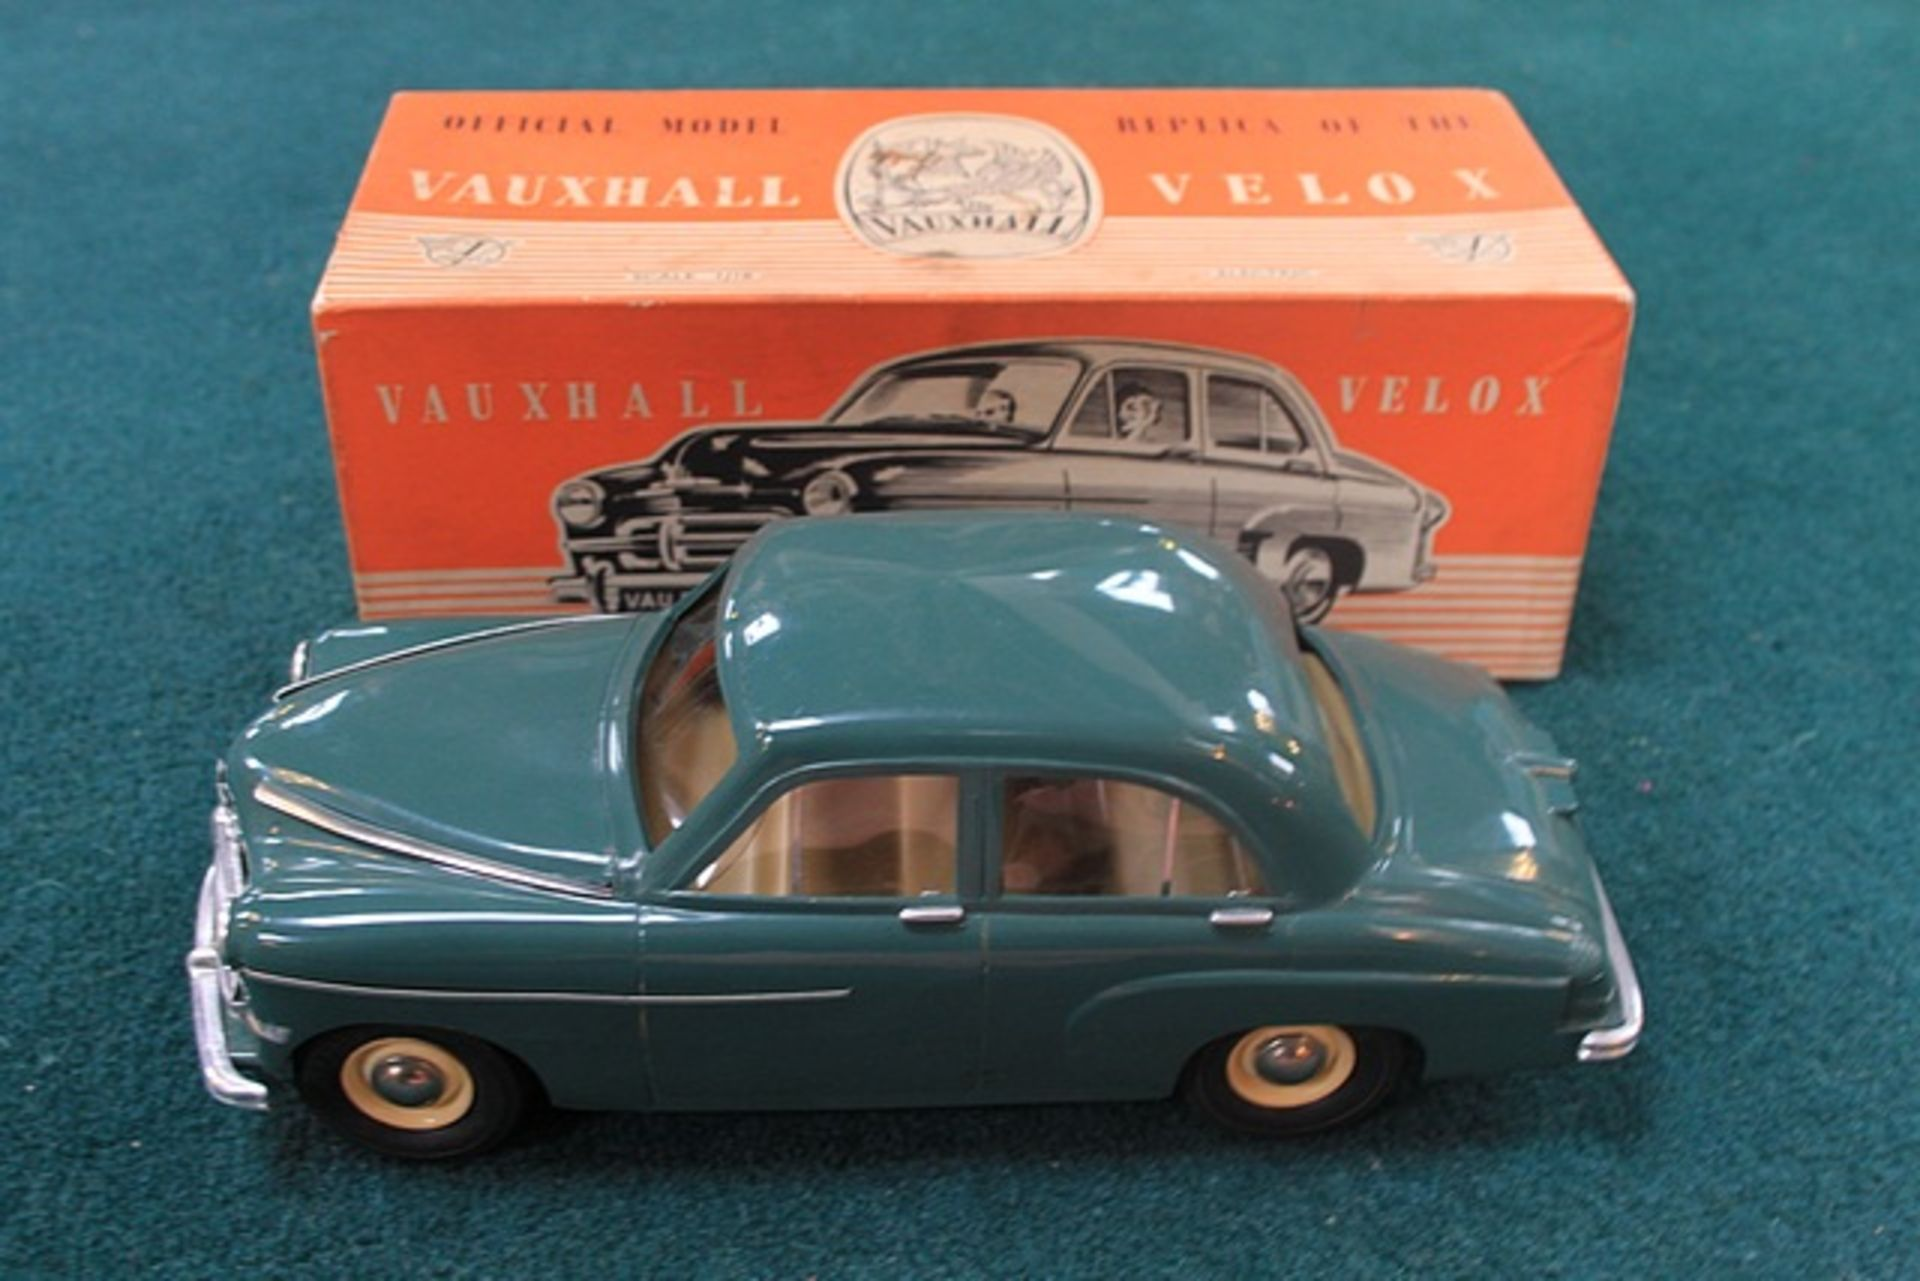 Lot 377 - Victory Industries Vauxhall Velox Official Model Replica Of The Vauxhall Velox Battery Operated